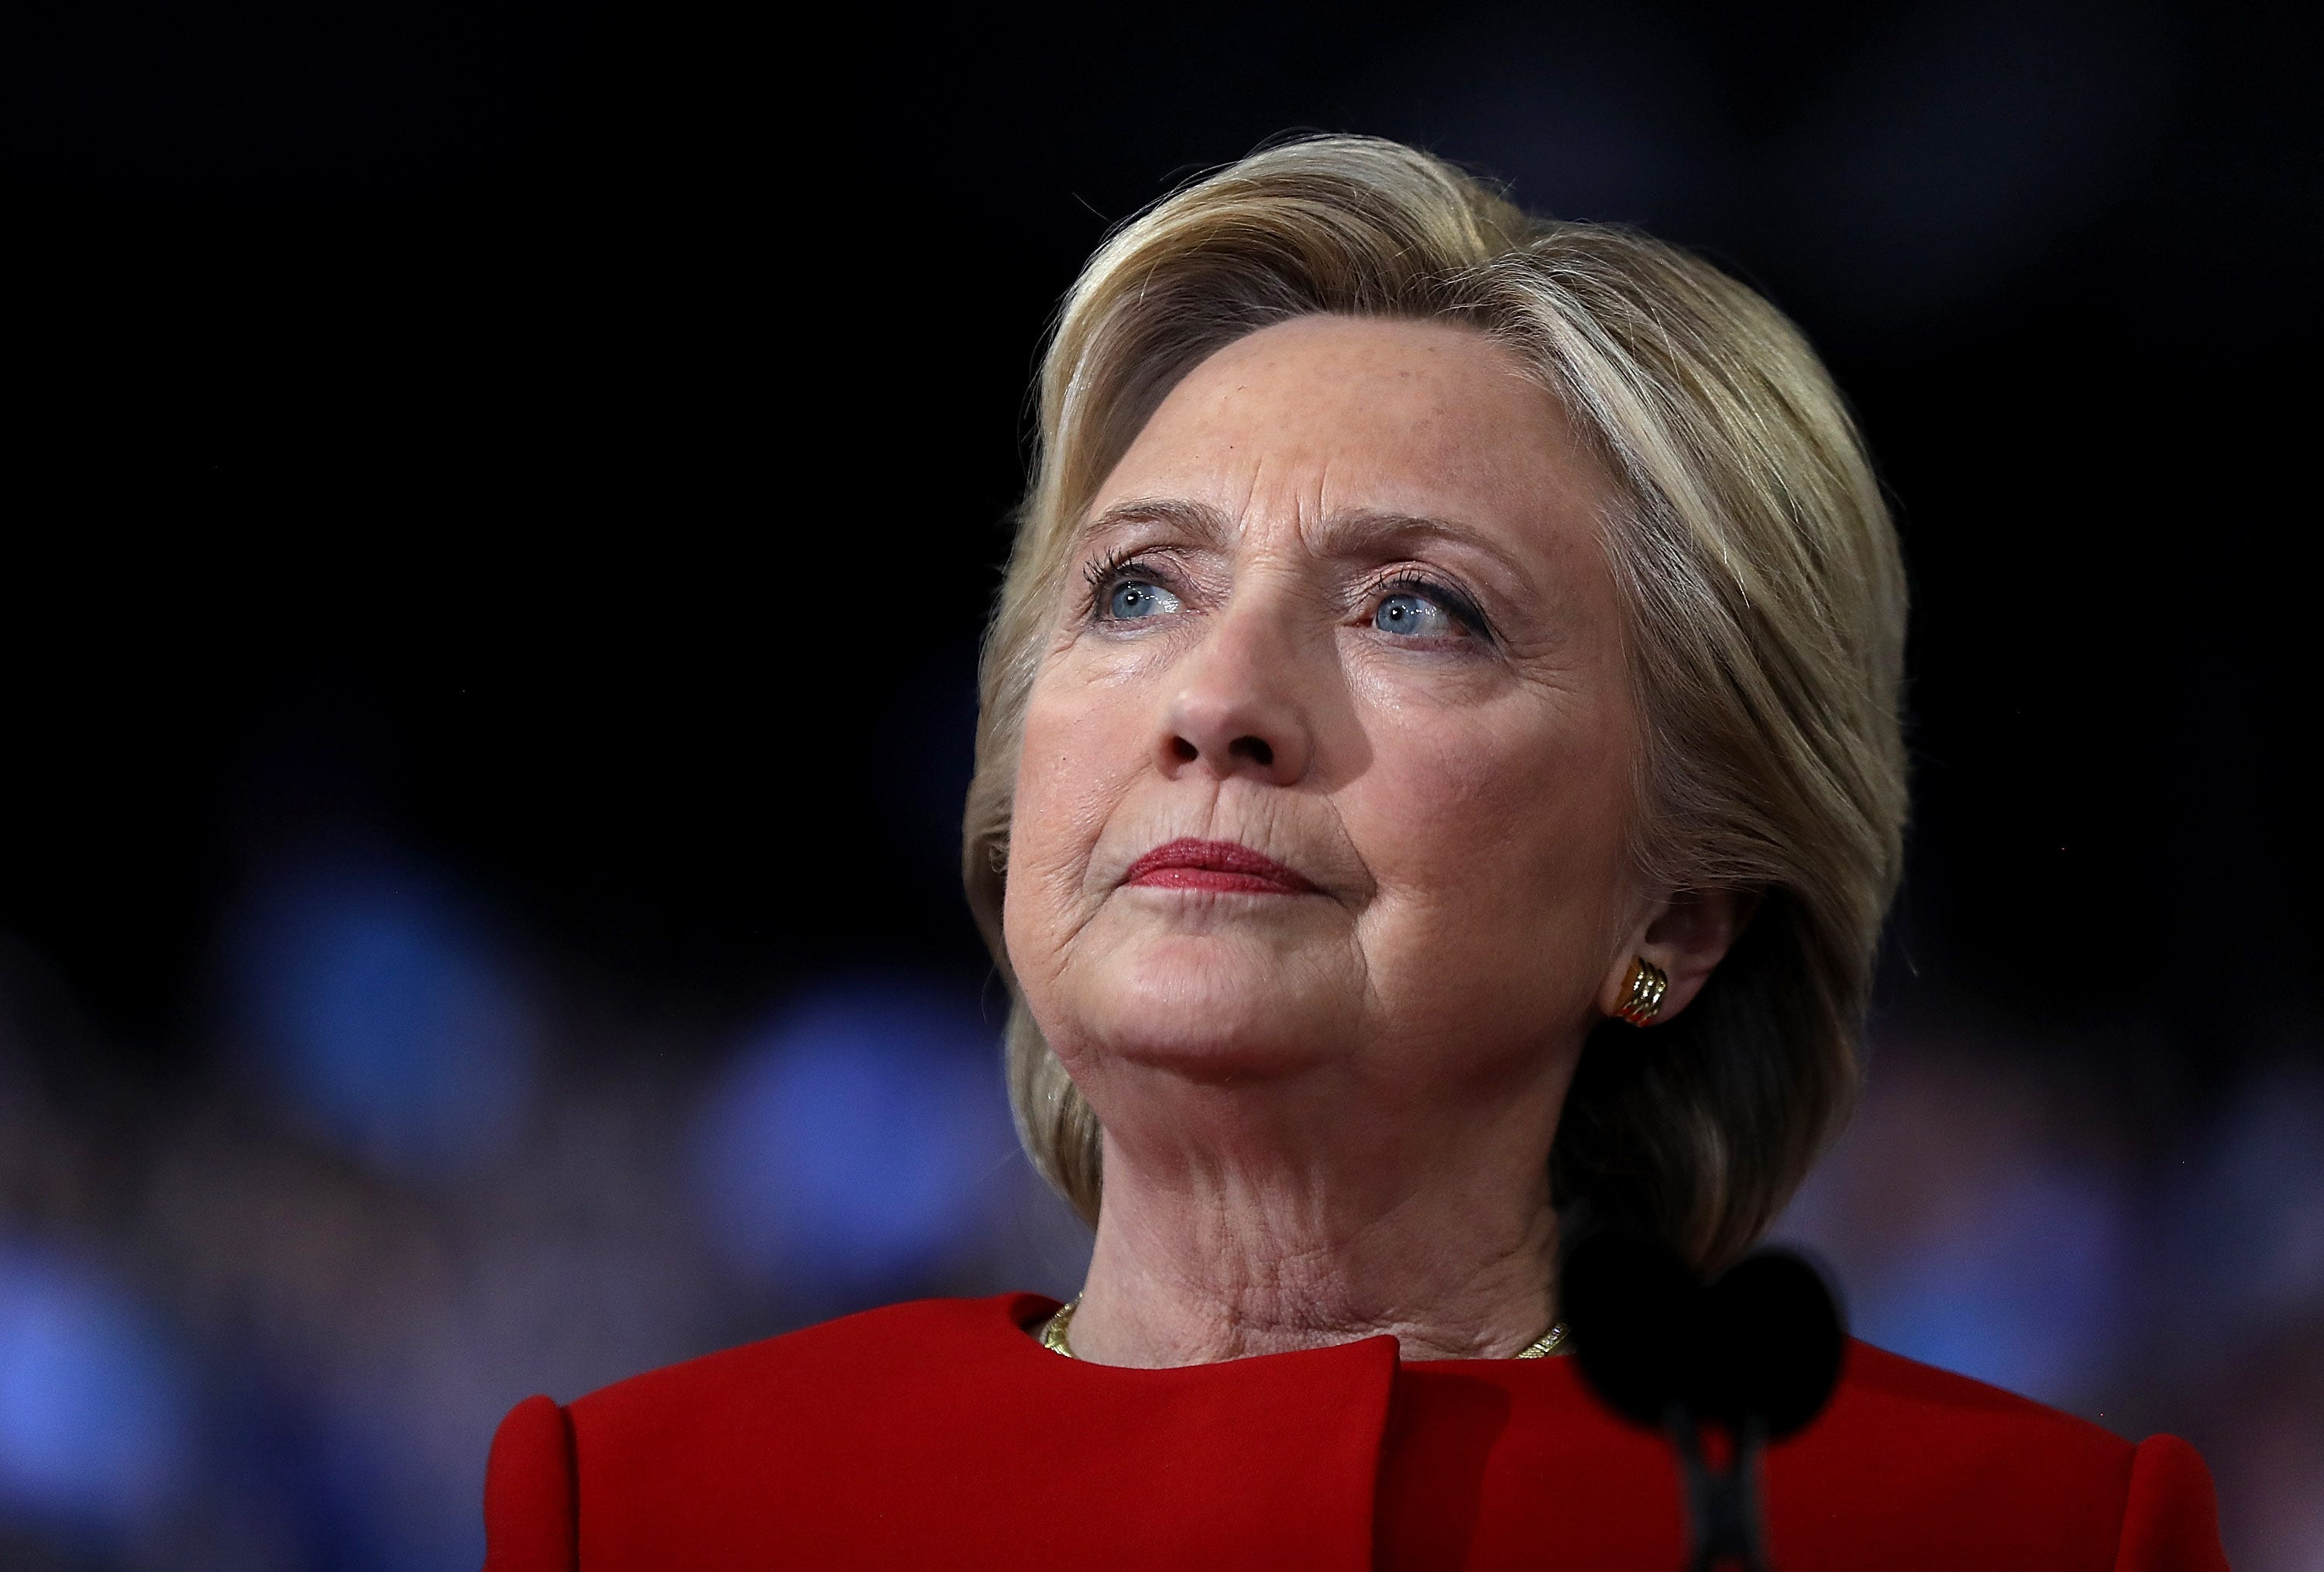 Exclusive: Hillary Clinton says Trump associates helped Russia meddle in the 2016 election